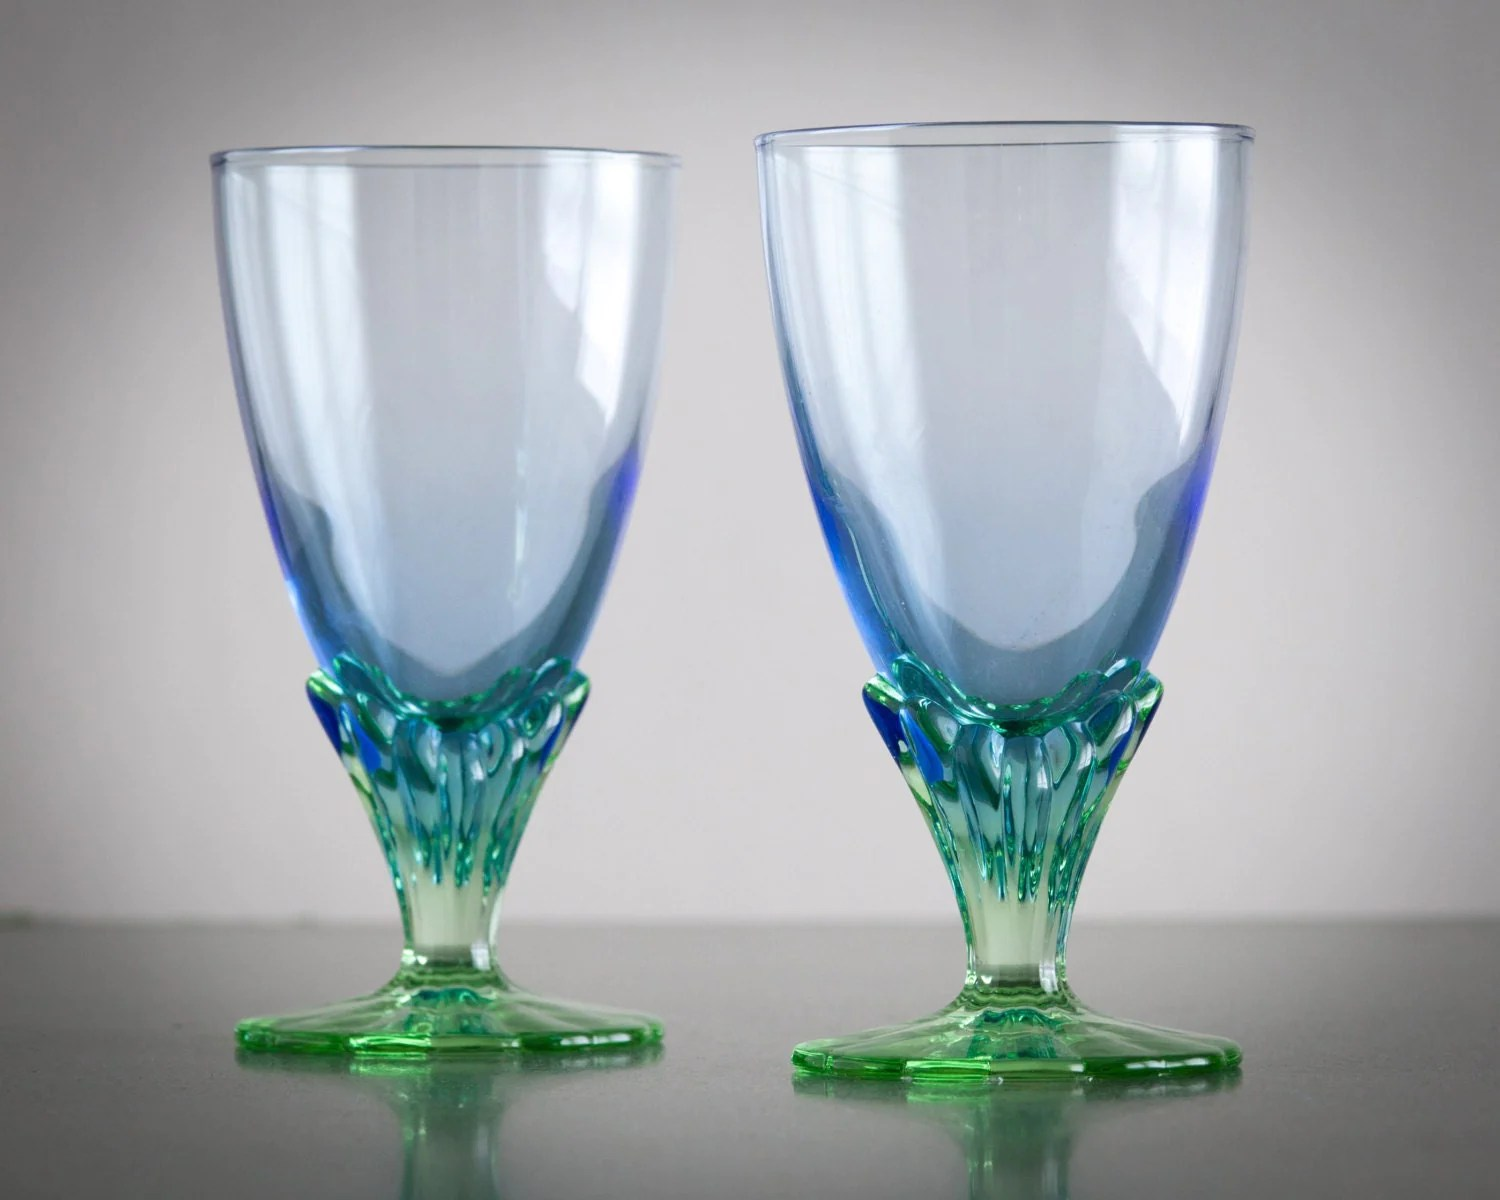 Goblet Style Wine Glasses Blue And Green Art Nouveau Style Ombre Goblets Wine Glasses